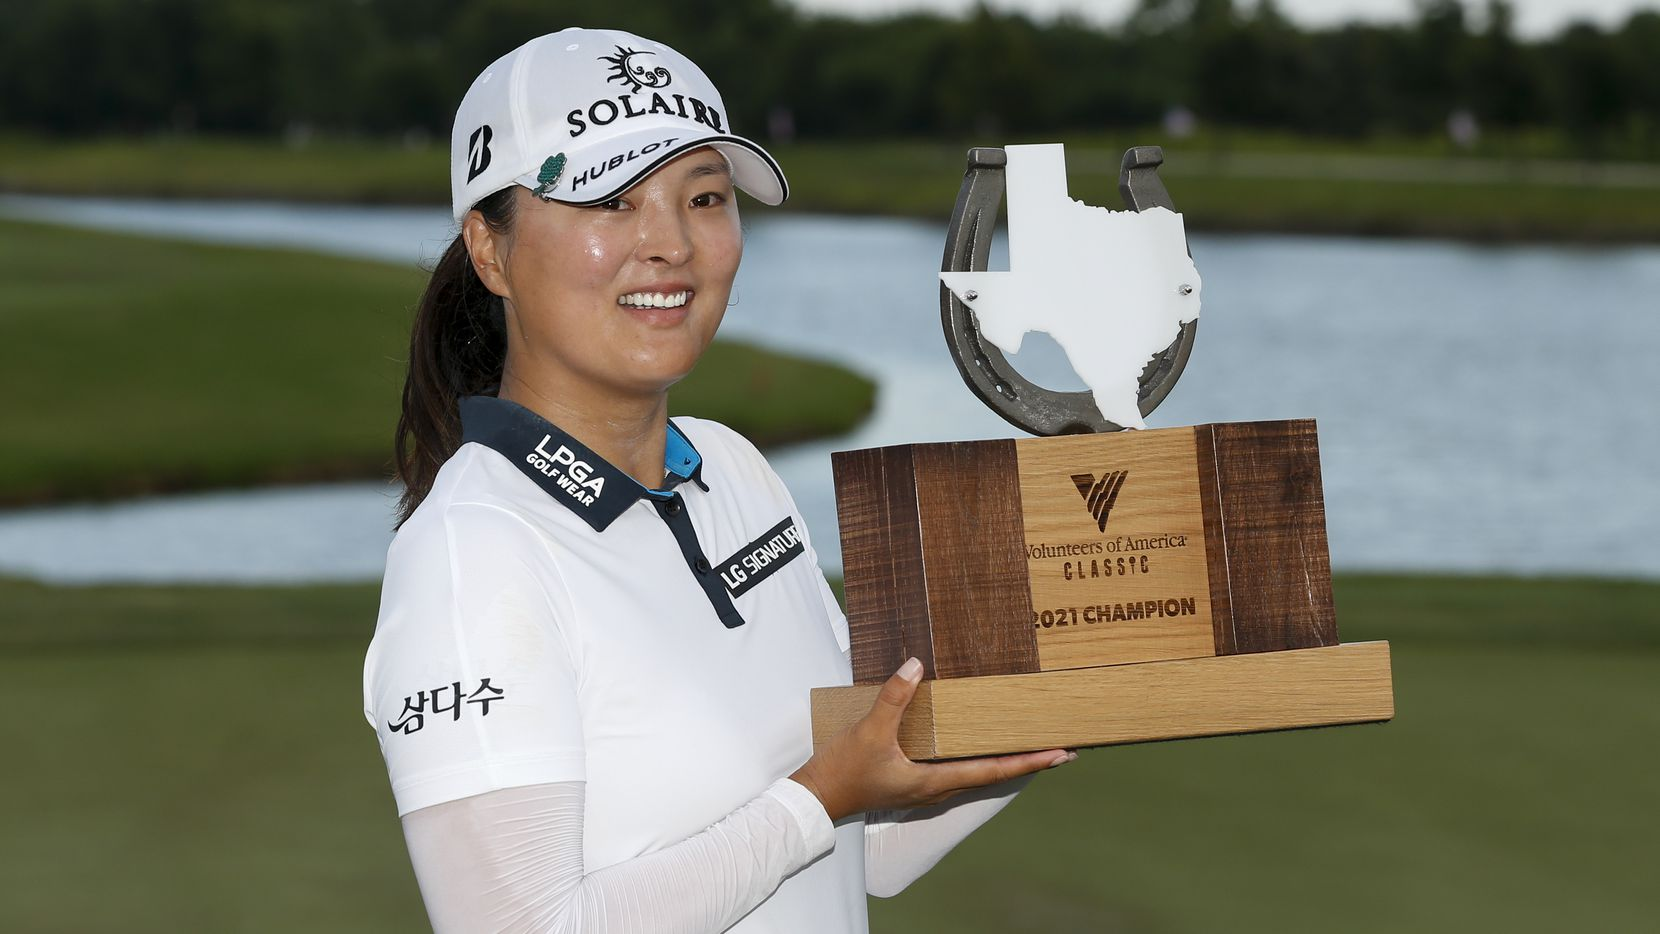 Professional golfer Jin Young Ko lifts the winner's trophy after winning the LPGA VOA Classic on Sunday, July 4, 2021, in The Colony, Texas. Ko finished the tournament 16 under par and one shot ahead of Matilda Castren.